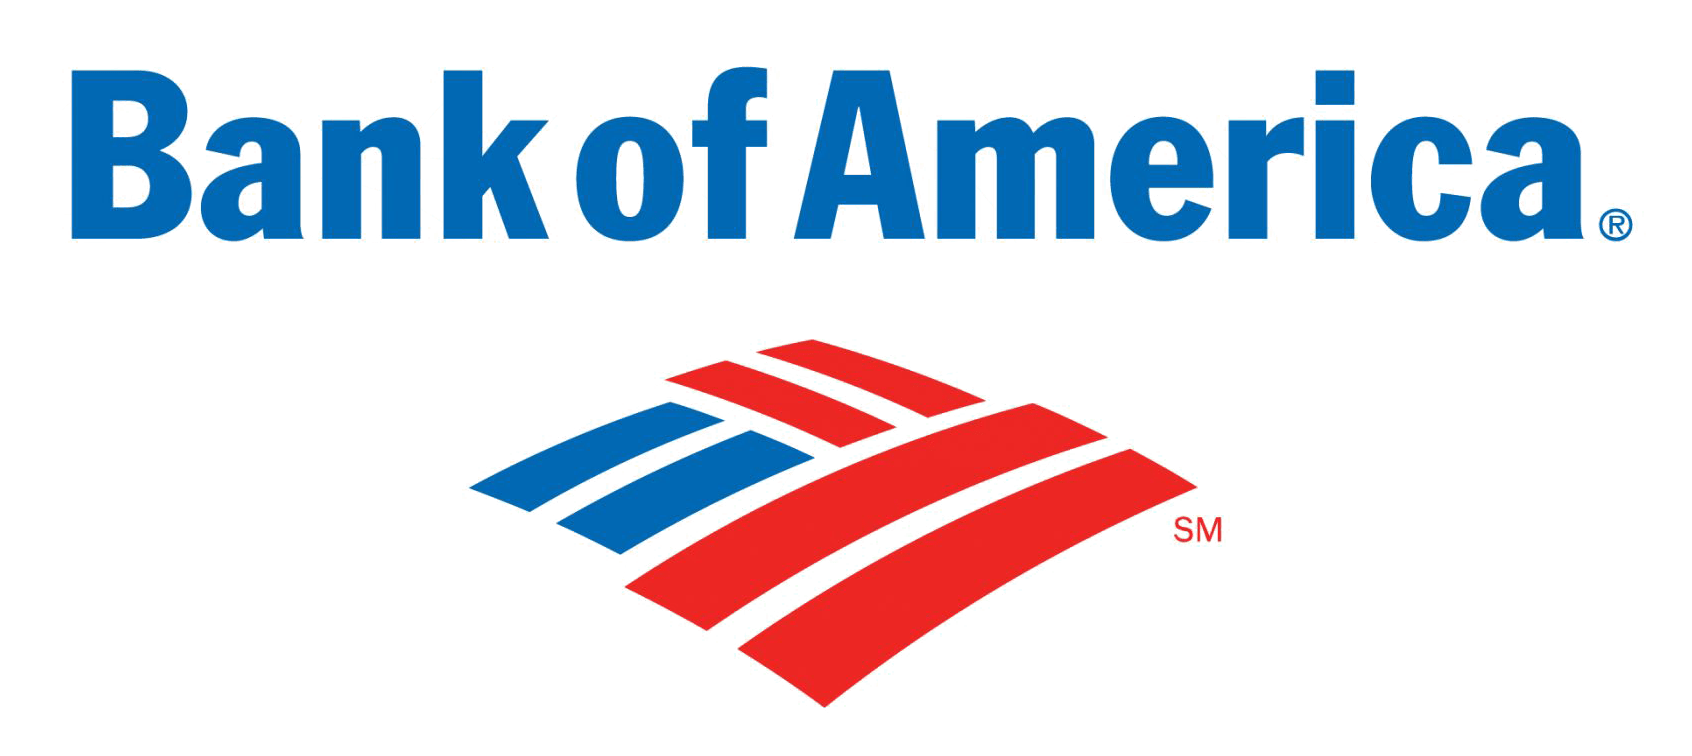 Bank of America Small Business Checking Review - 2019